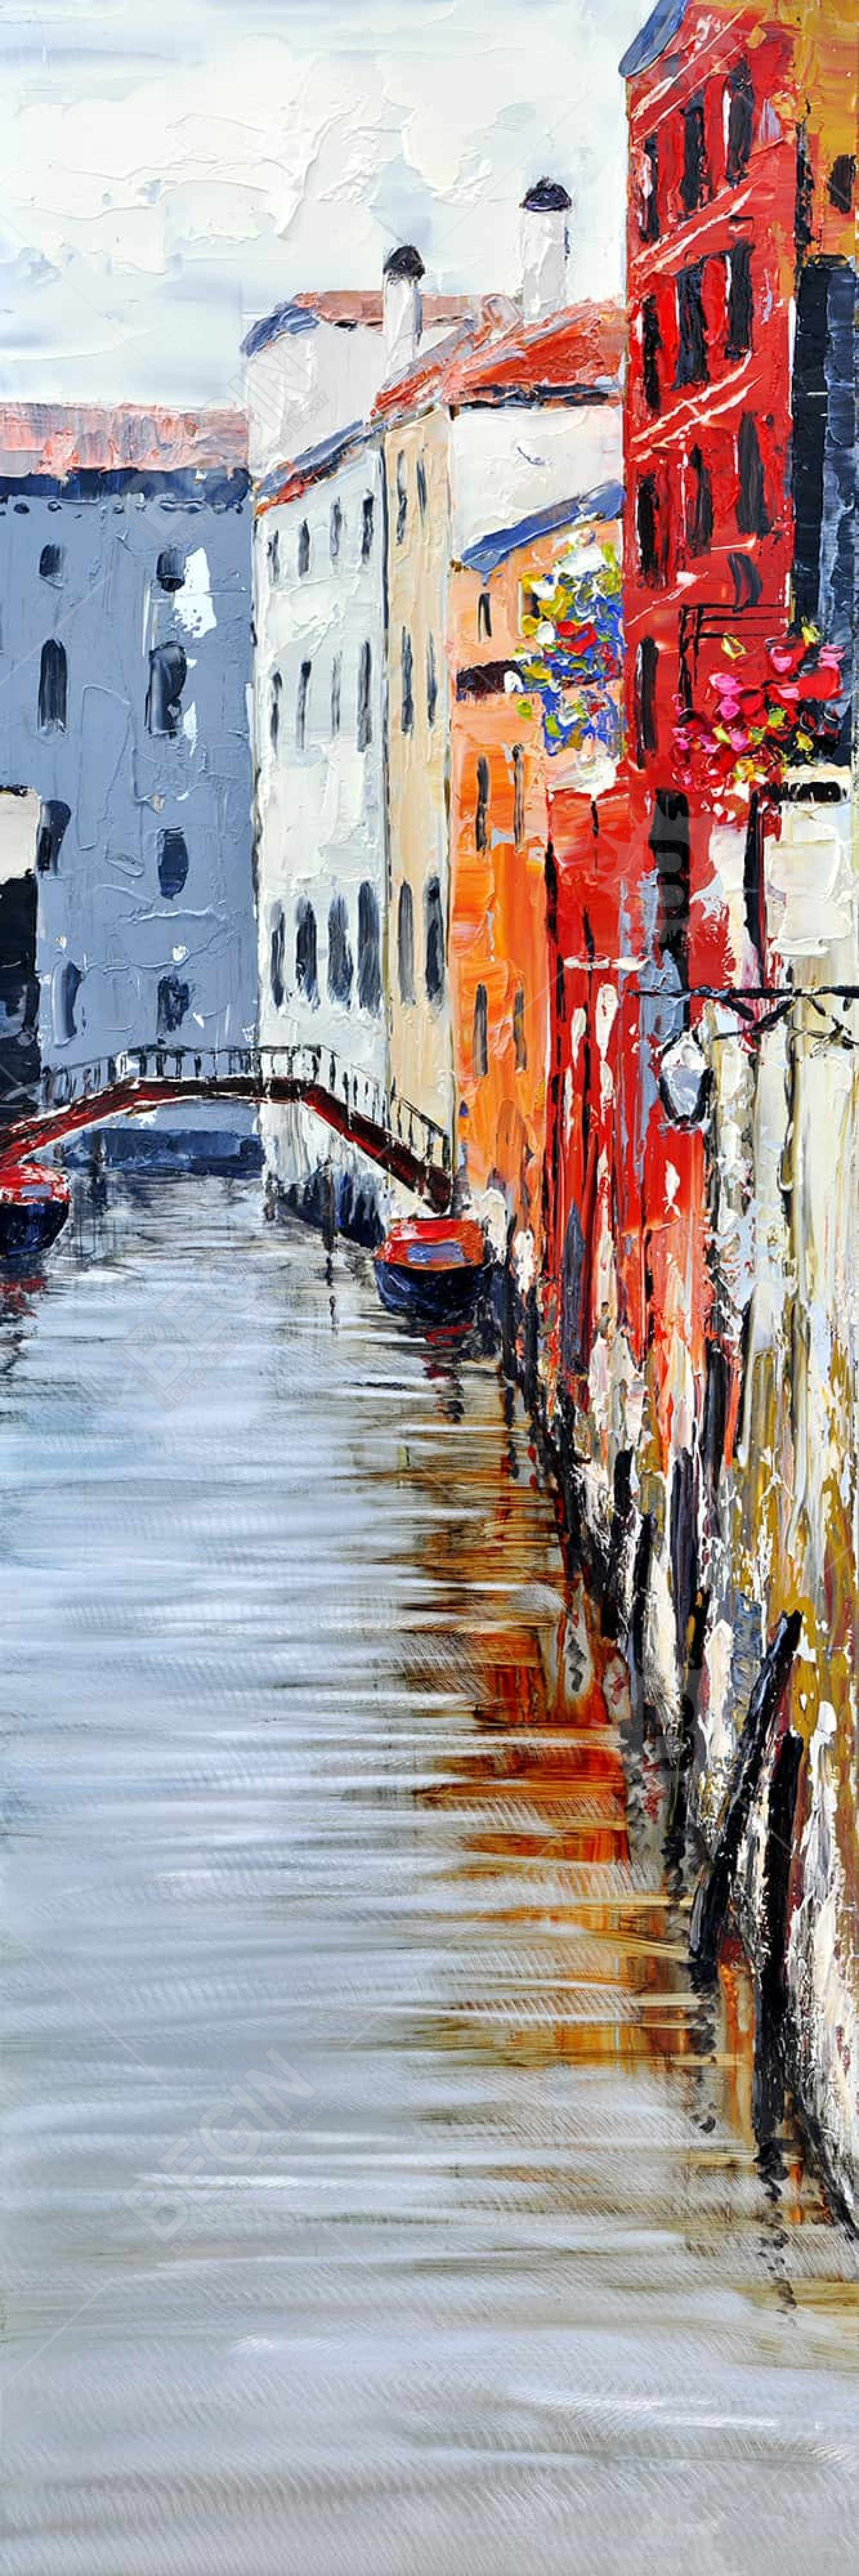 Colorful and texturized city on the water